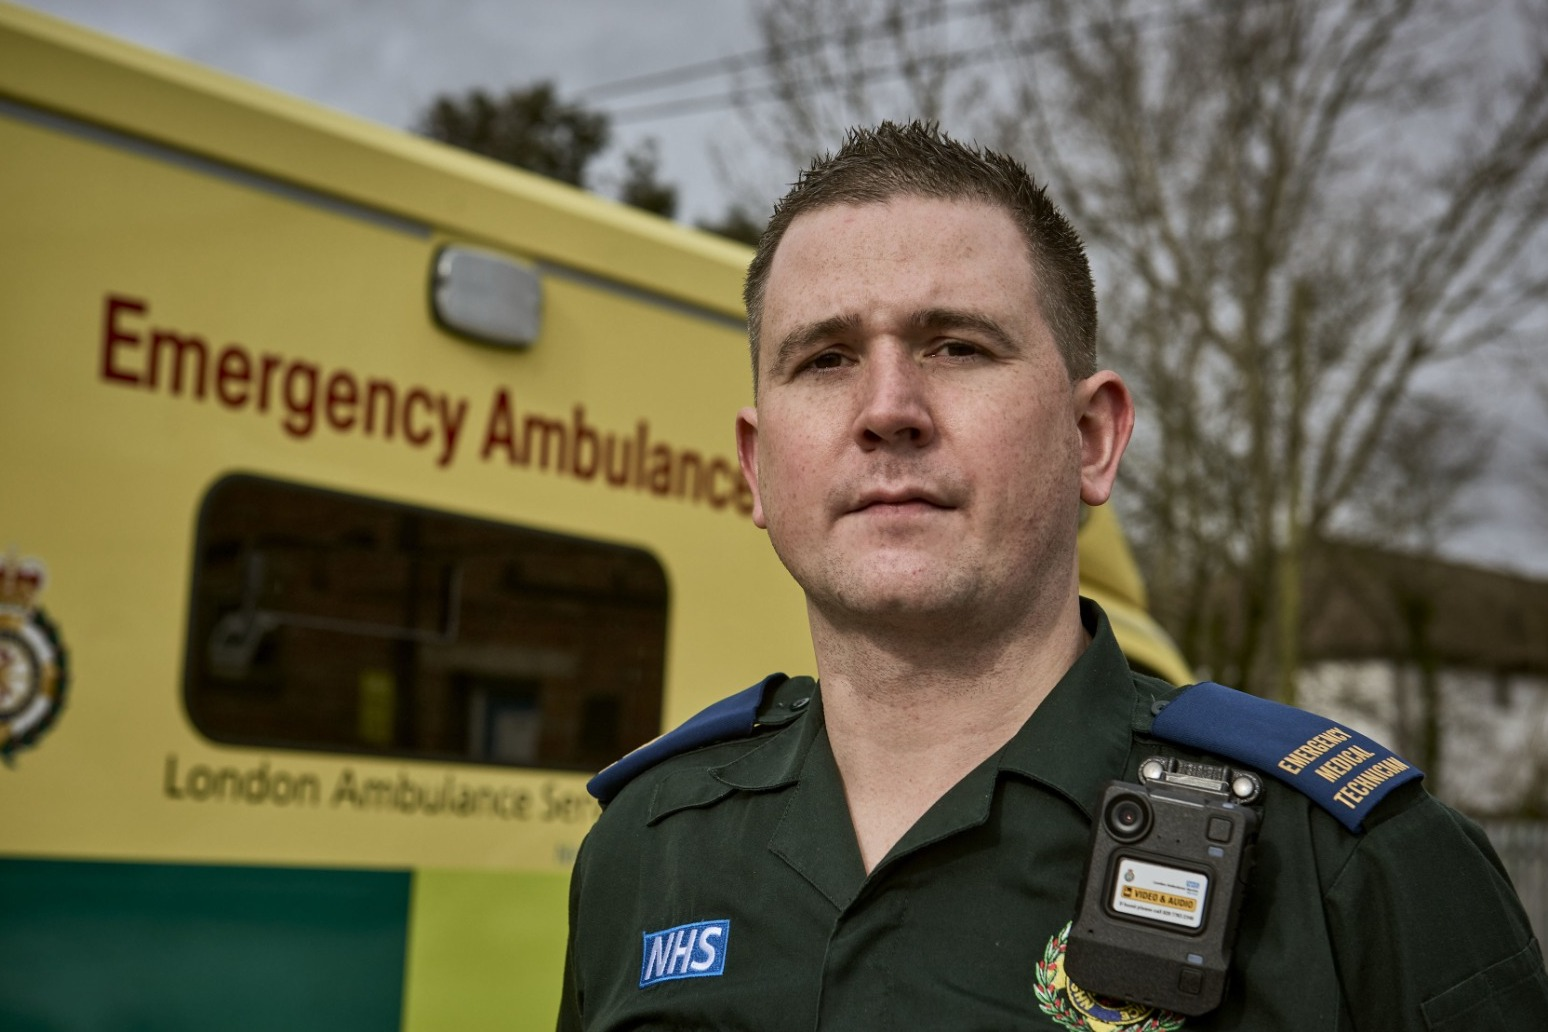 Call for more ambulance staff after military personnel cover 'burnt-out' crews